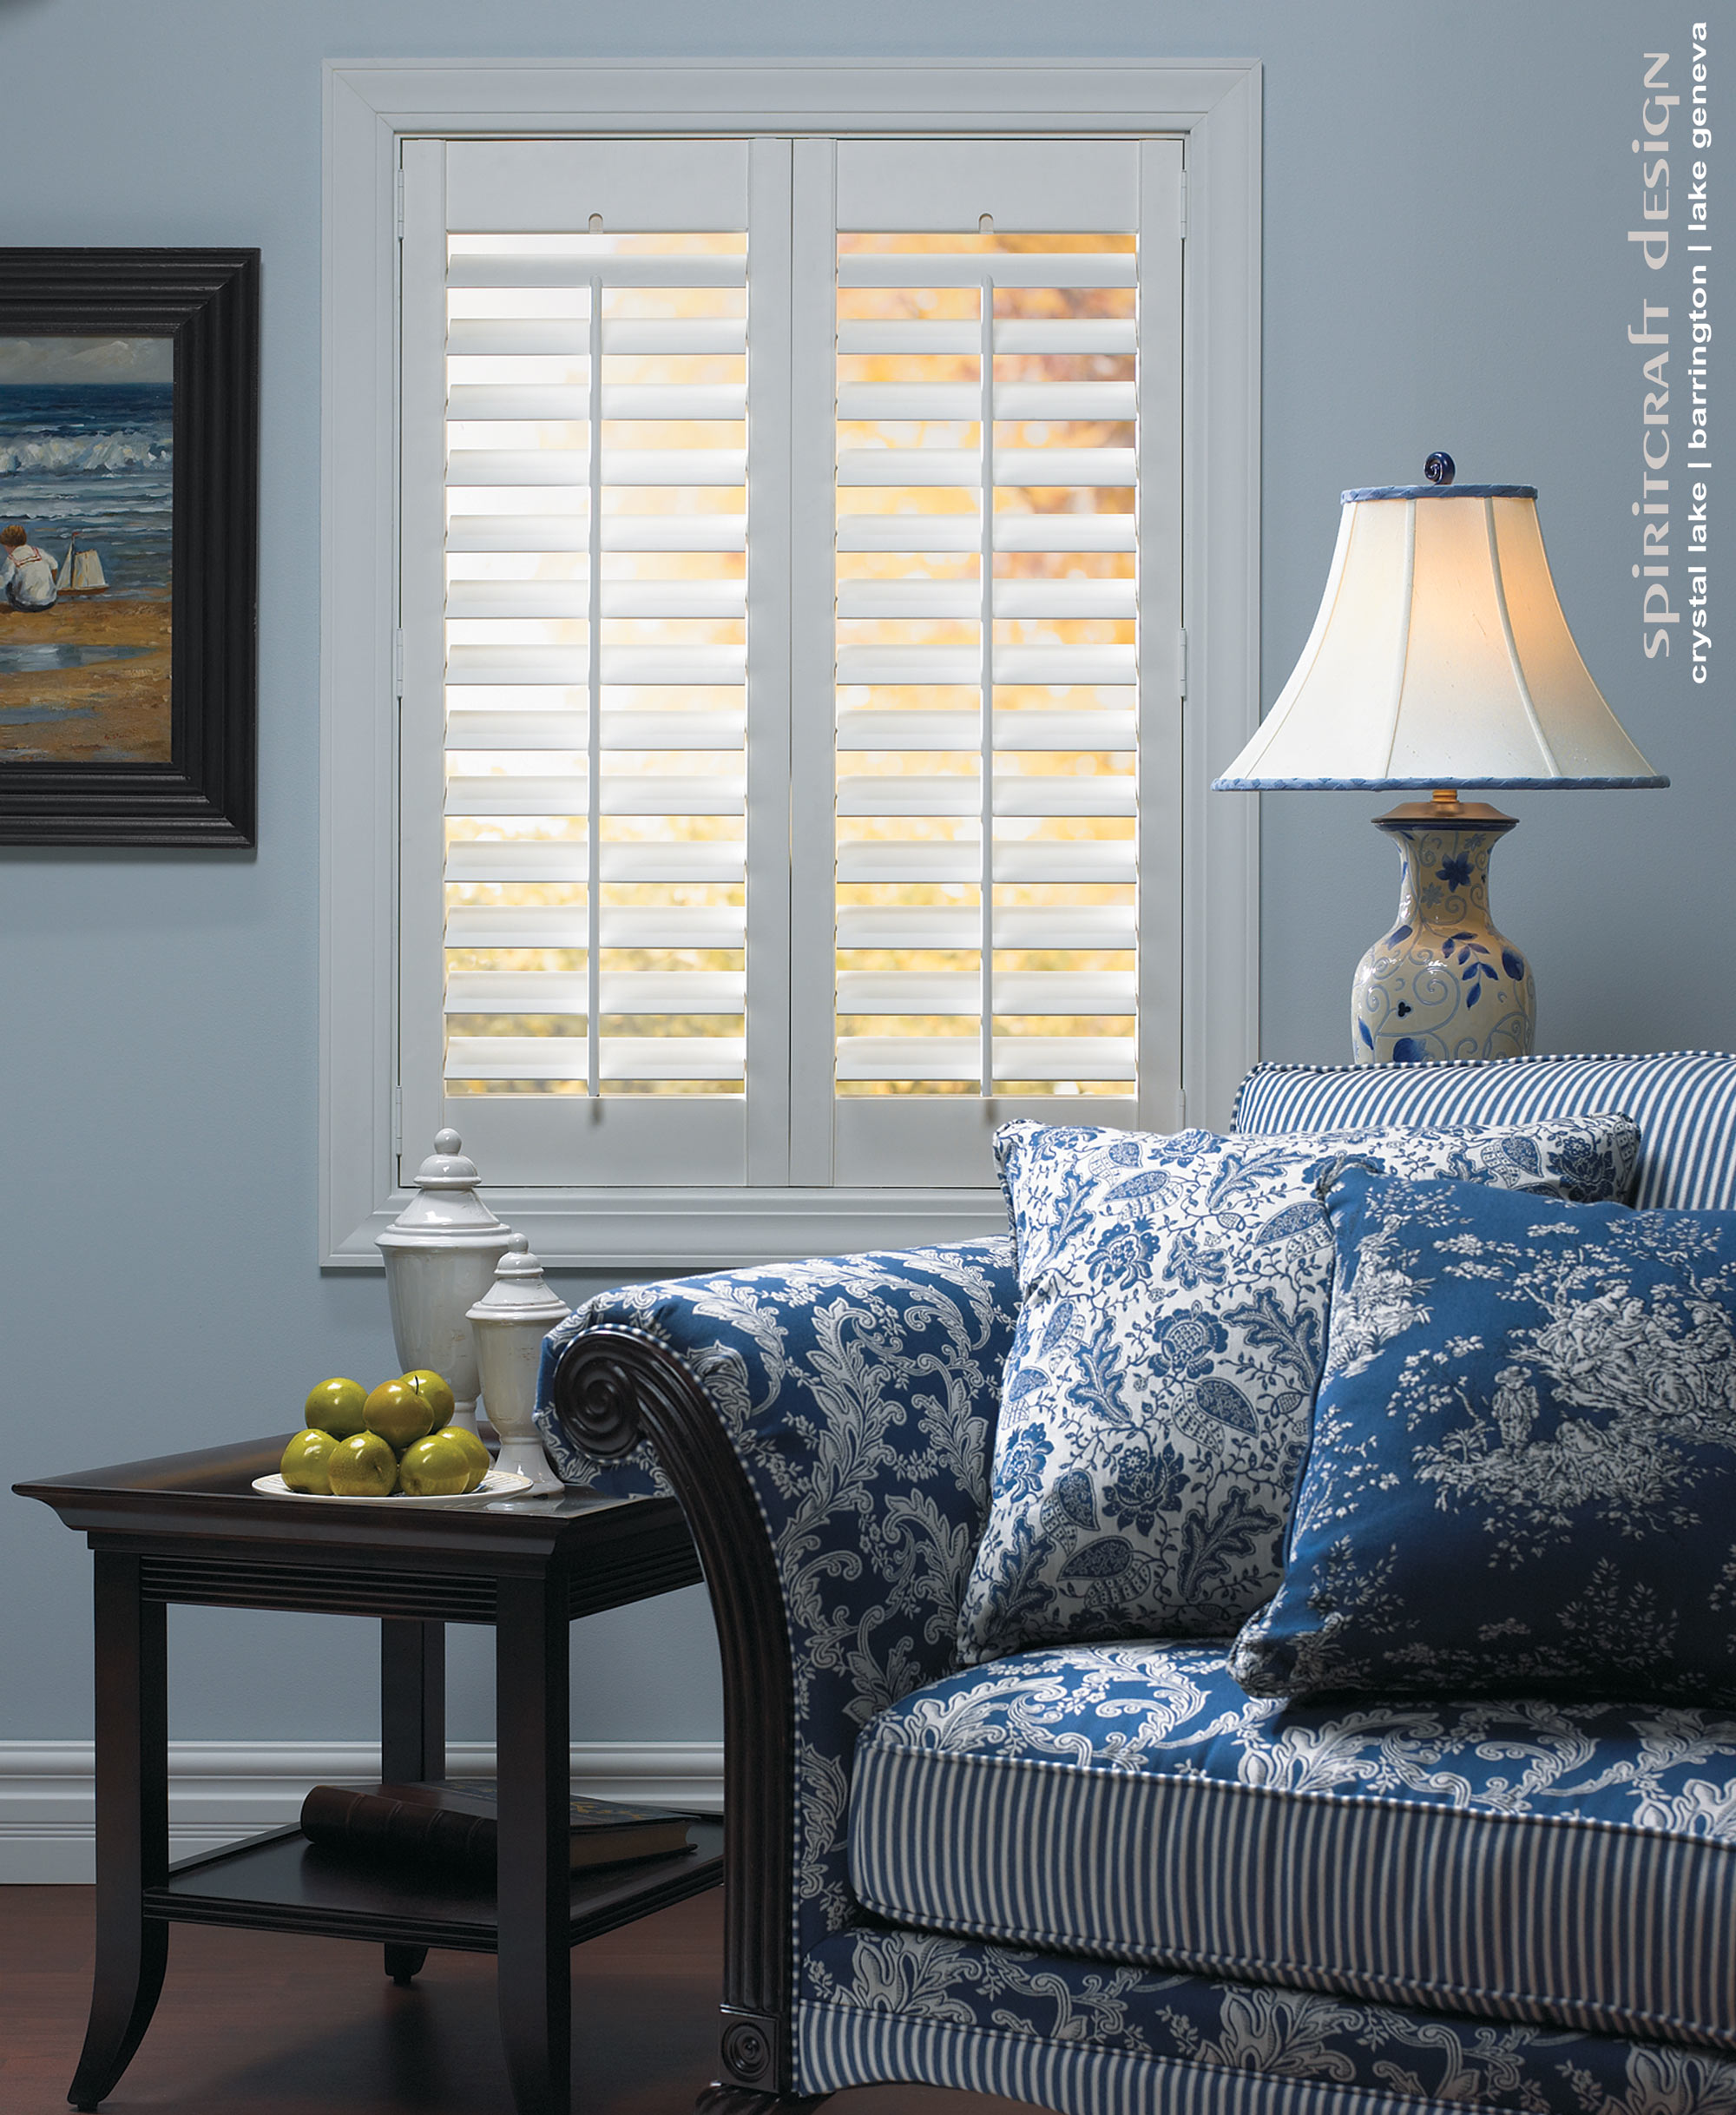 About Spiritcraft Design And Custom Window Treatments